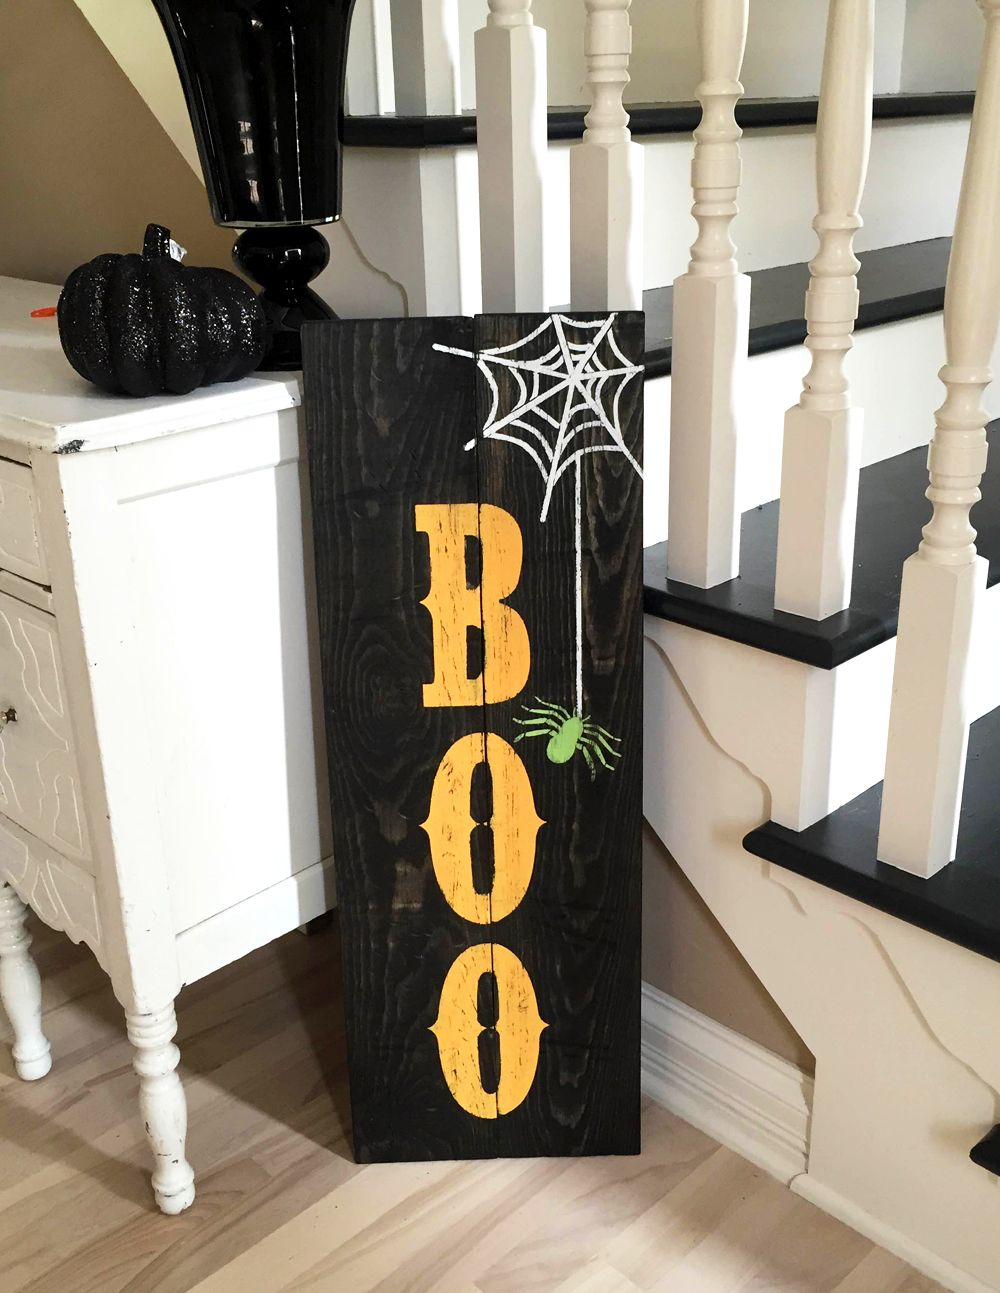 Custom Wood Sign Project Gallery: Holidays, Home, Family, Bar & More ...